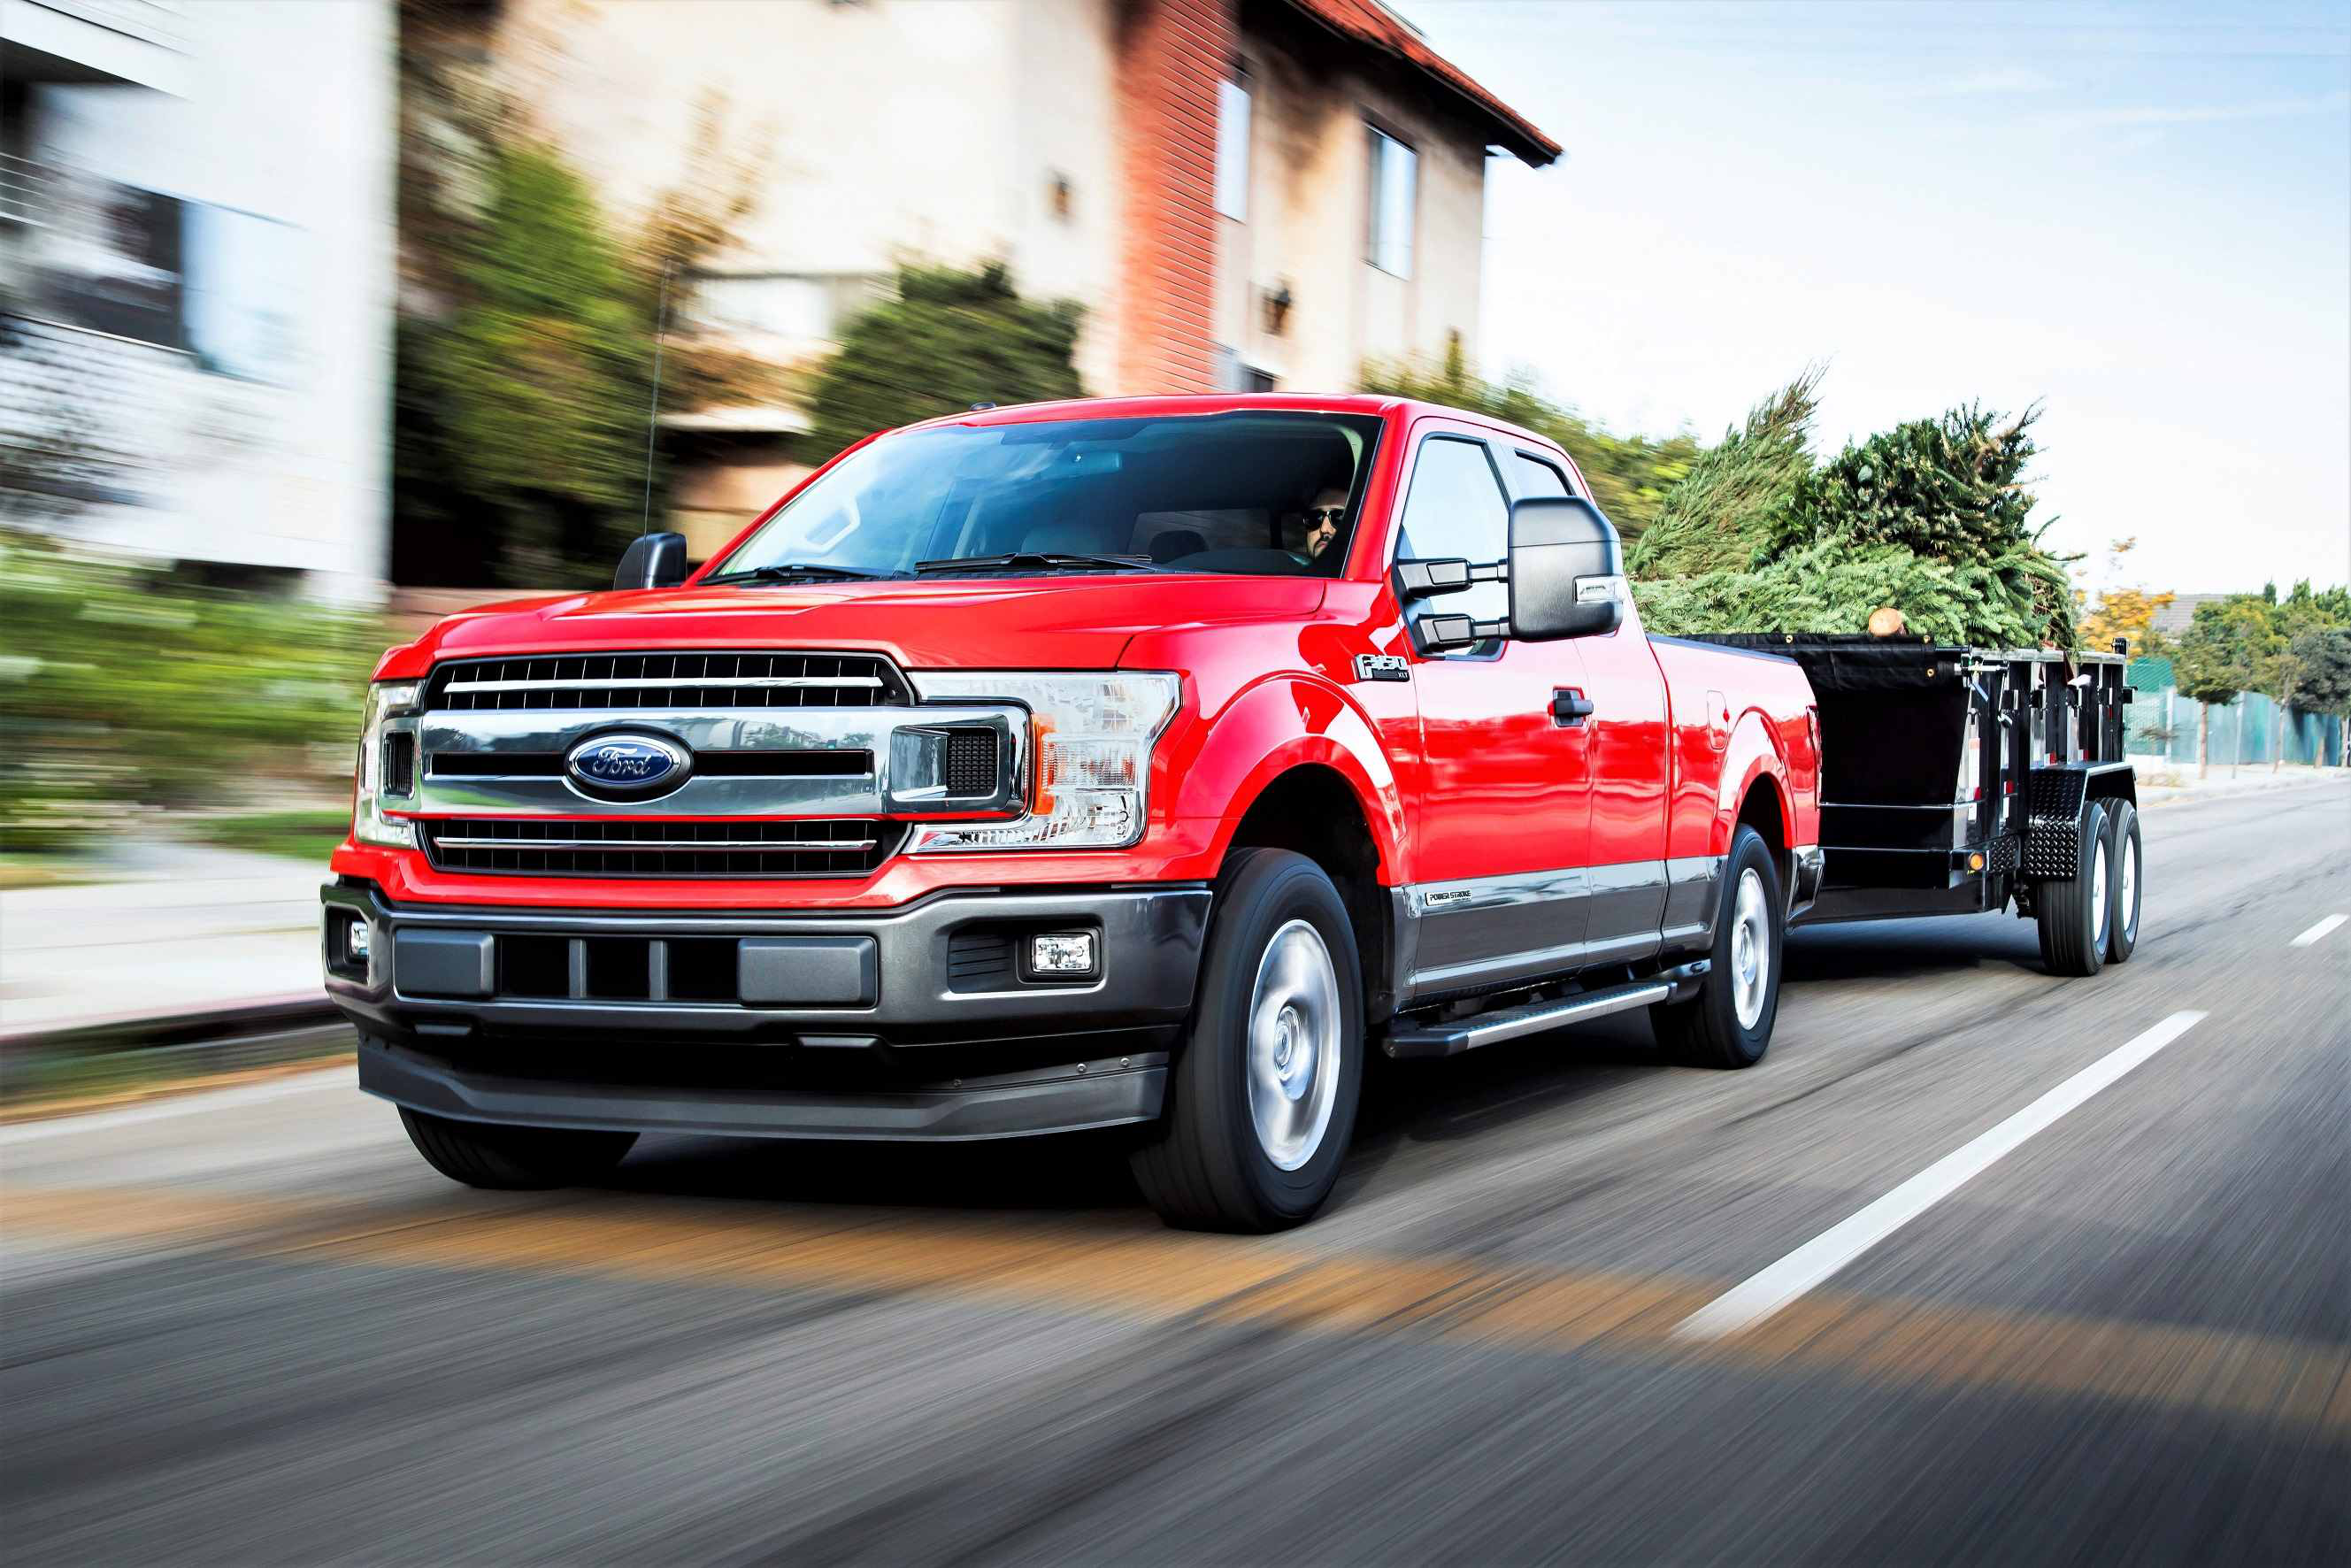 Ford S First Ever F 150 Stroke Sel Will Hit The Market This Spring With Segment Best Torque Towing And Fuel Economy Company Announced Today